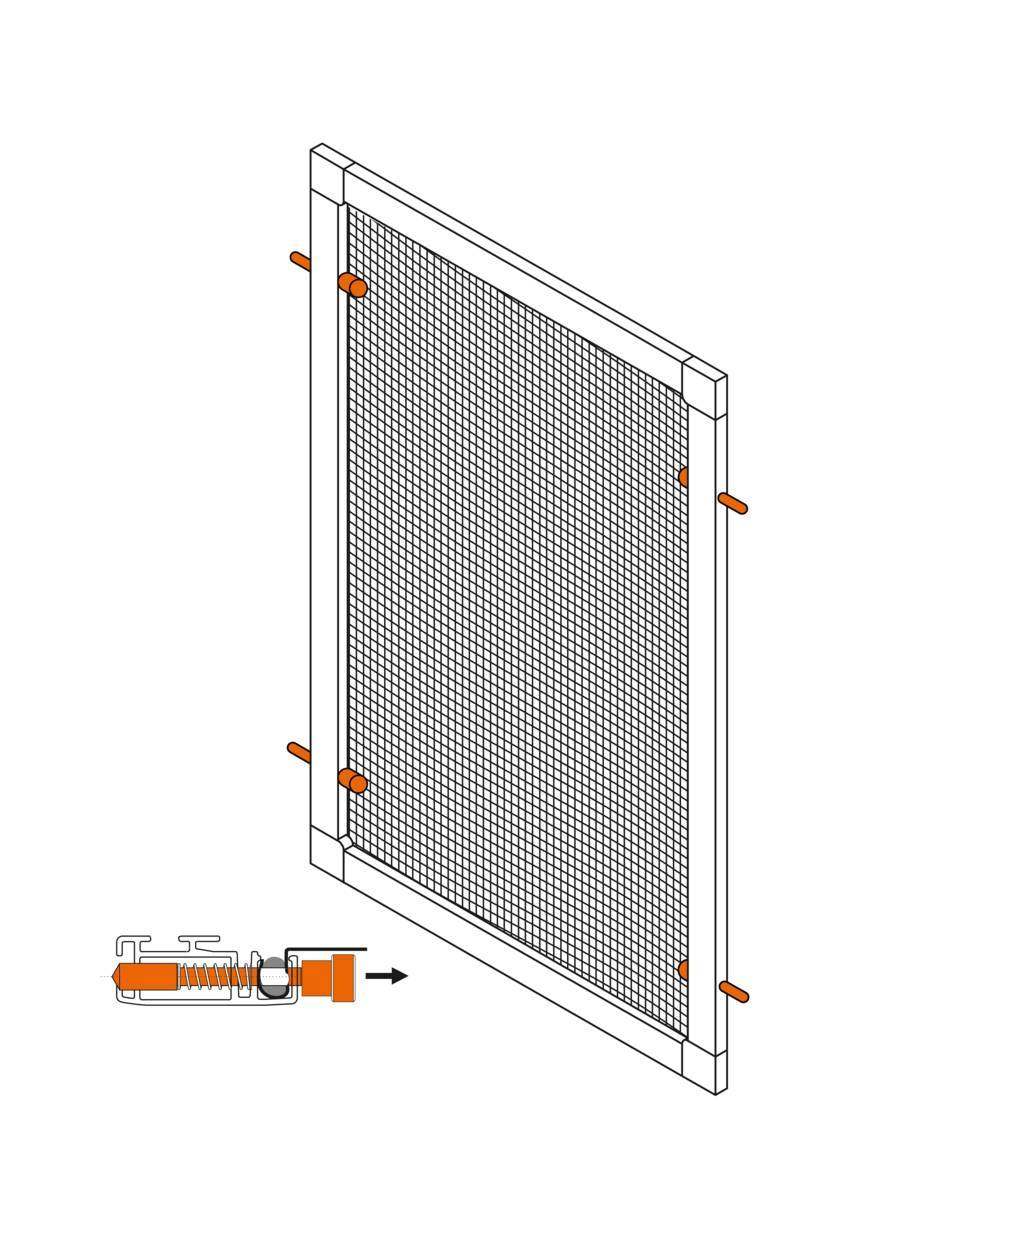 Spring pin mounting set for fly screen windows.